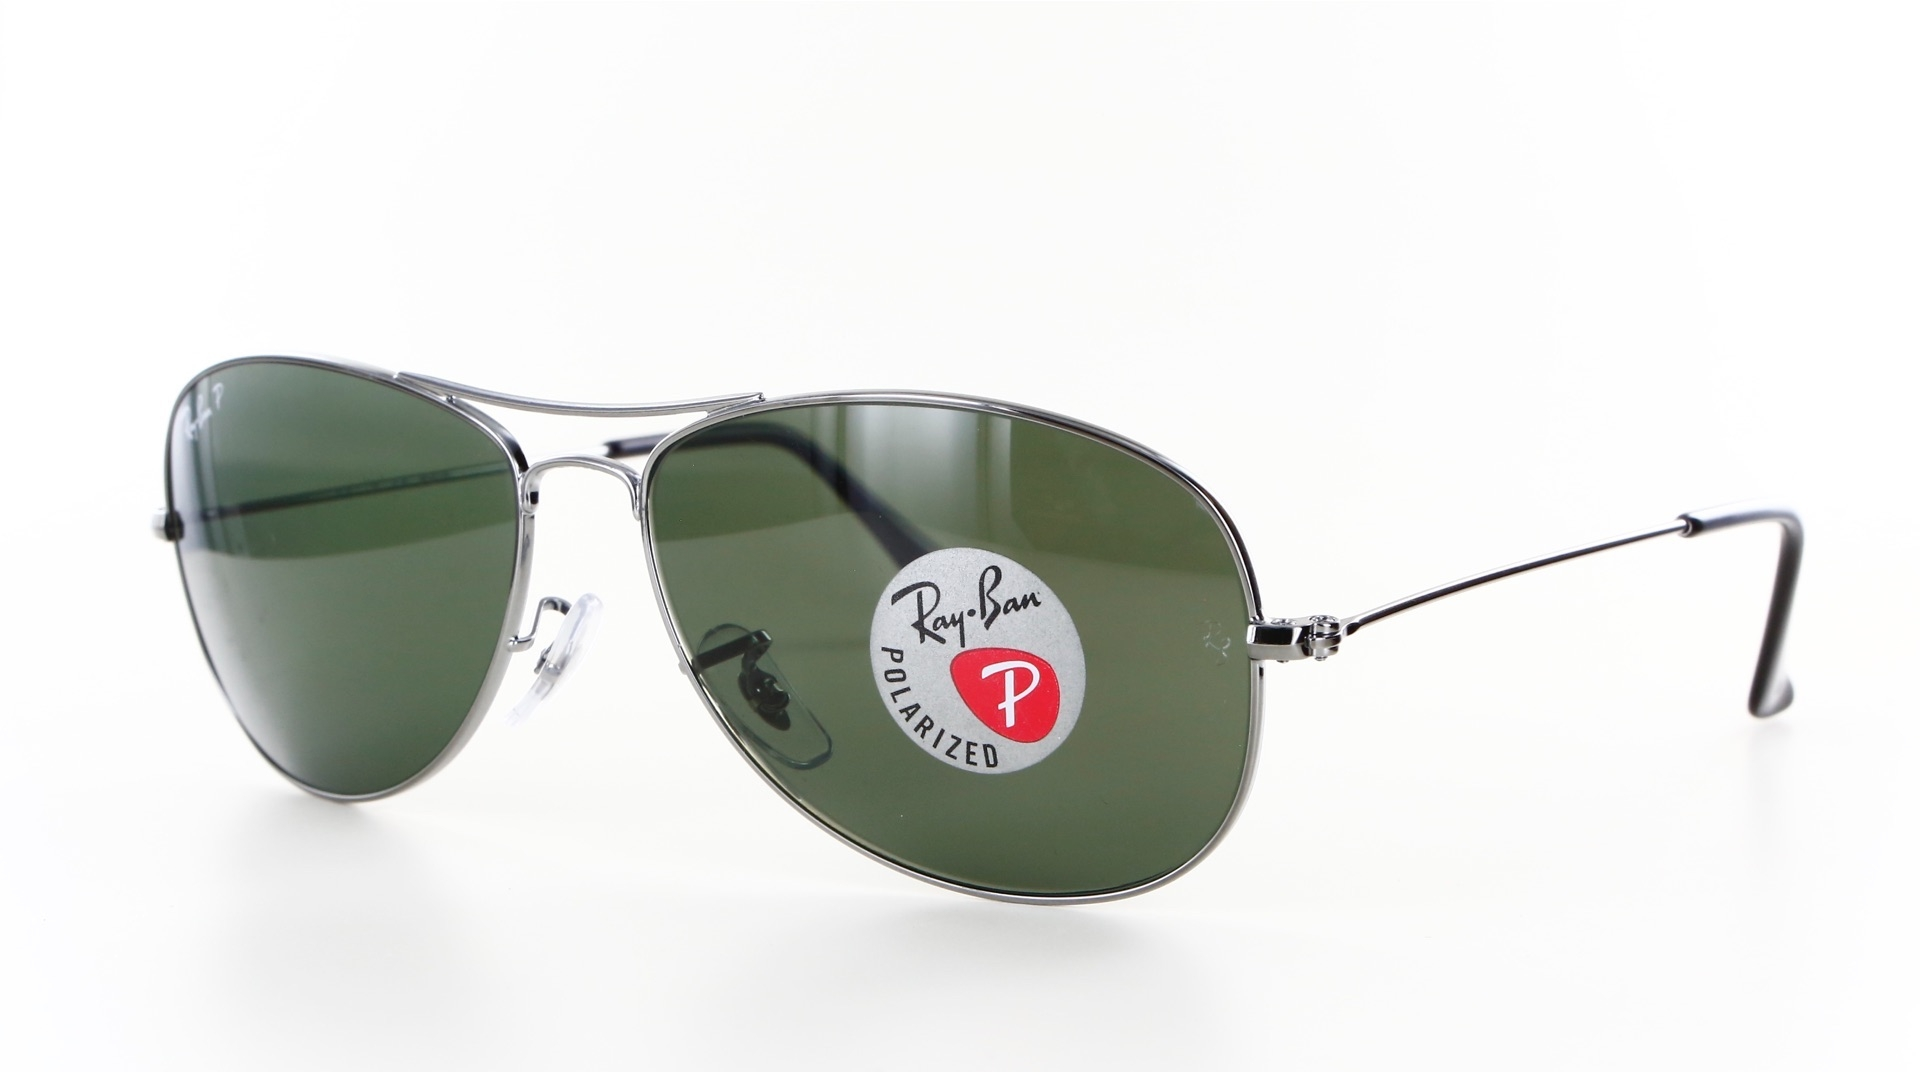 Ray-Ban - ref: 65734